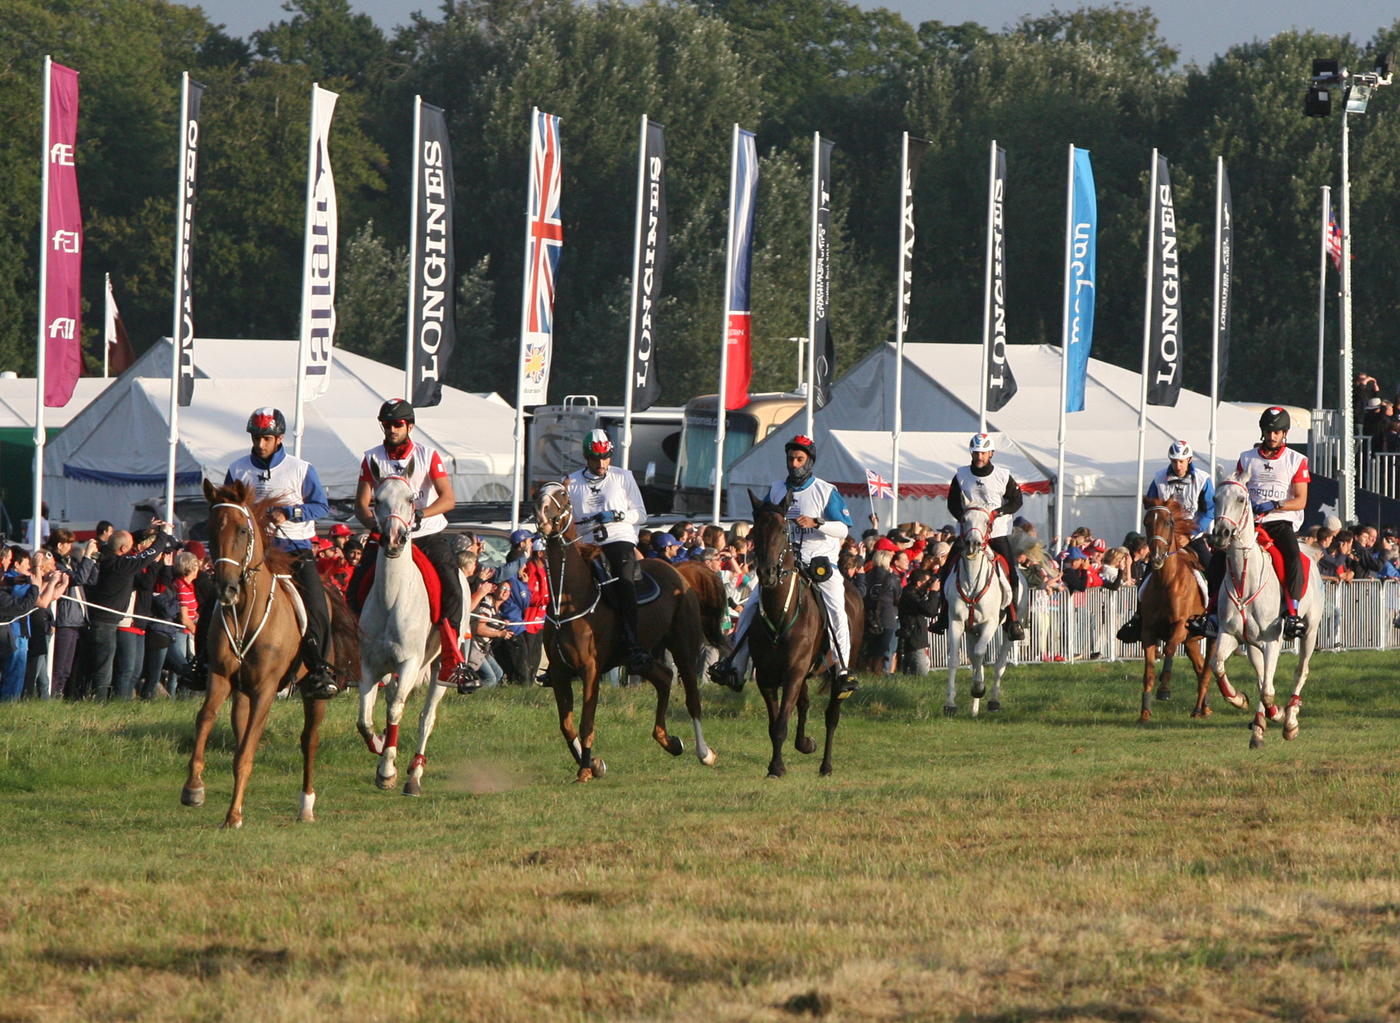 Longines Endurance Event: Longines FEI World Endurance Championships at Euston Park 2